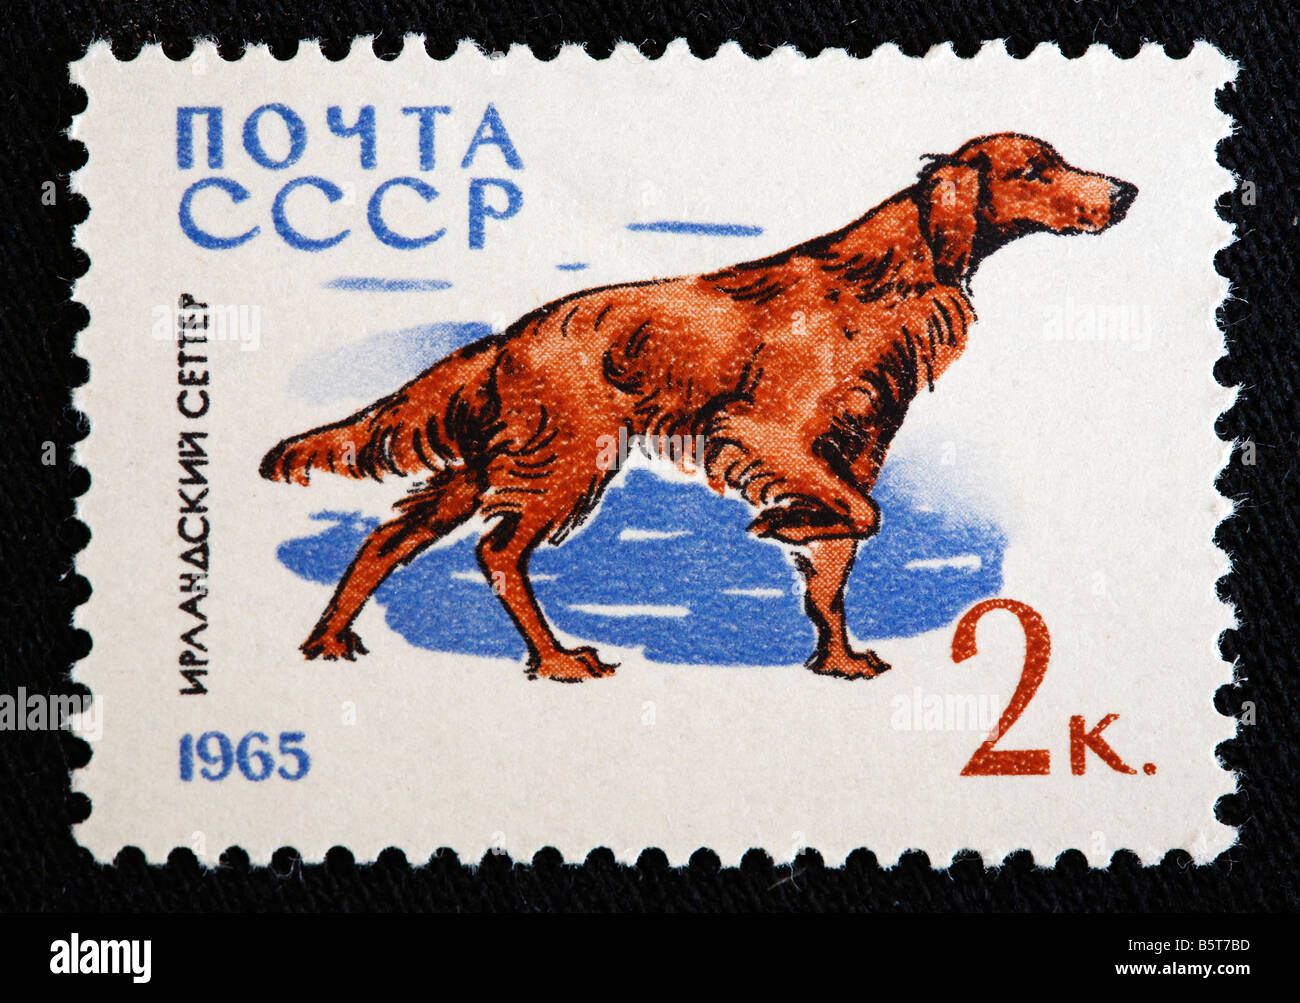 Irish Setter, Red Setter, postage stamp, USSR (Russia), 1965 - Stock Image